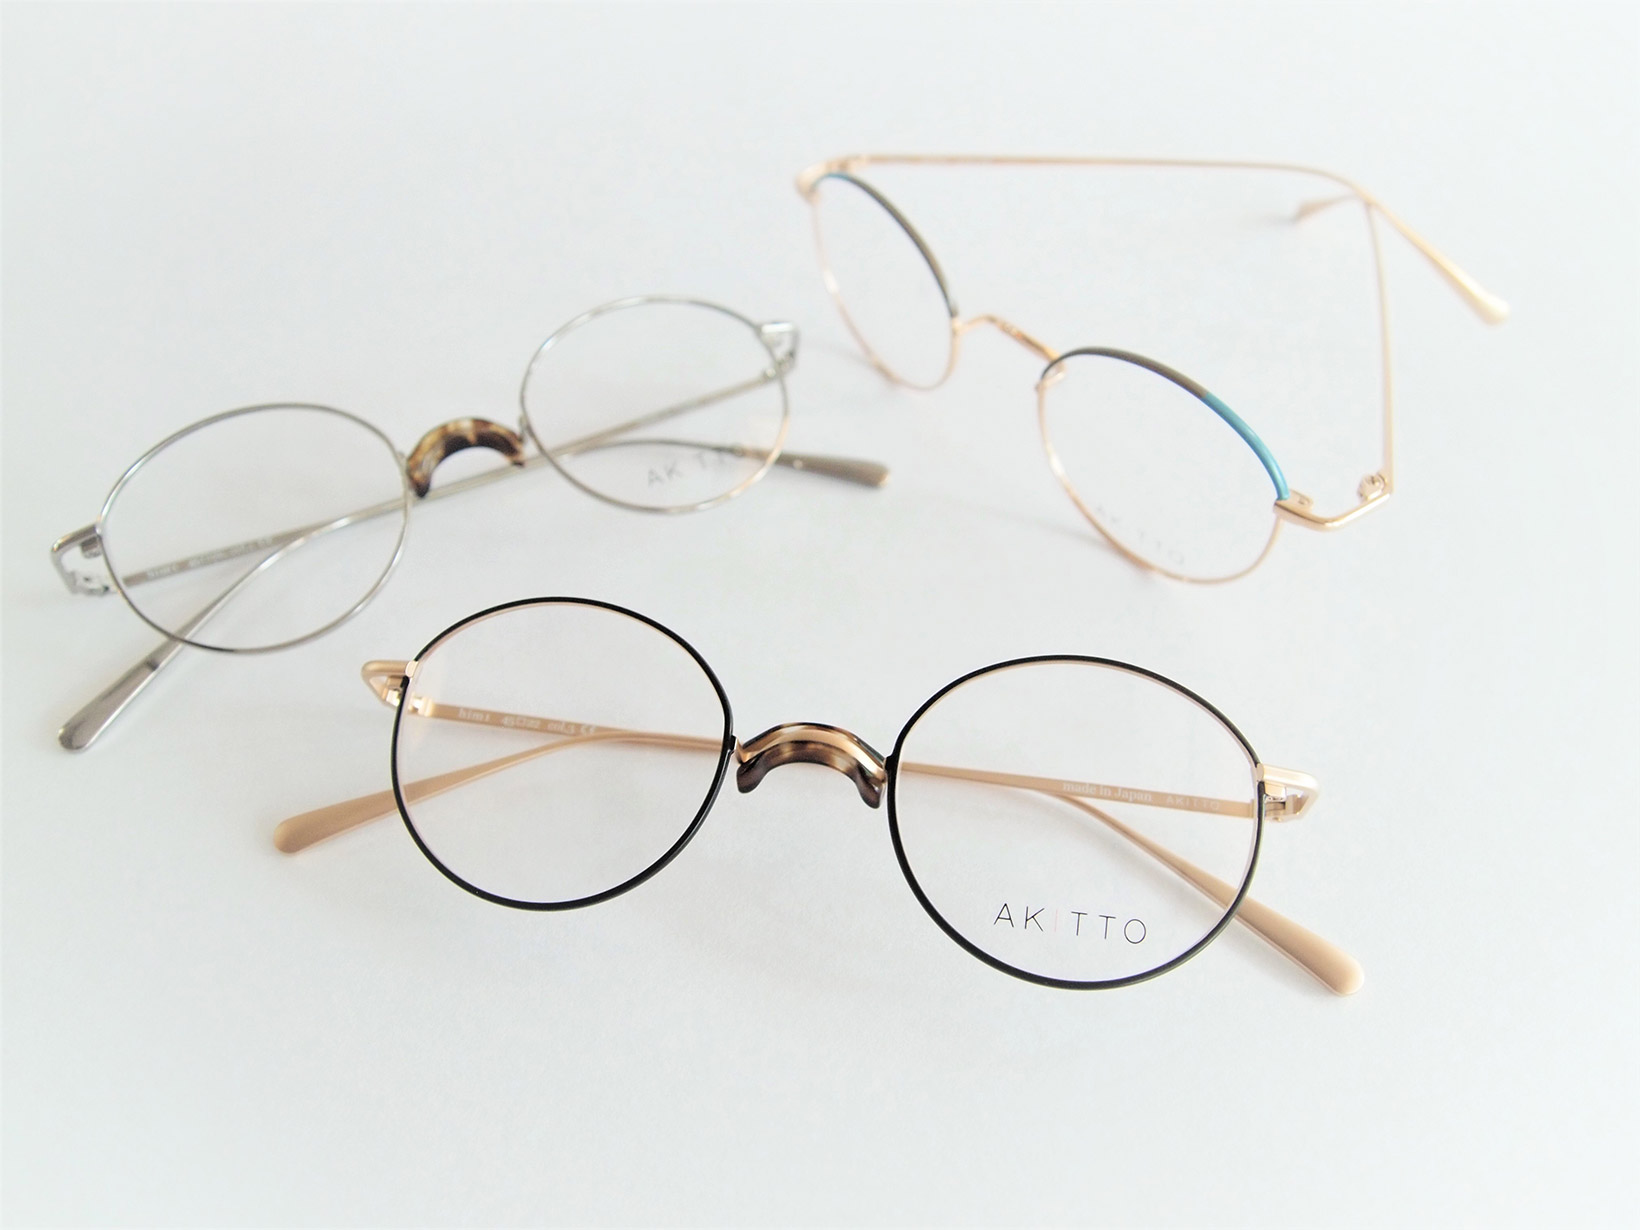 AKITTO 2018-3rd him1 size:45□22 material:titanium price:¥35,750-(+tax) *推奨プラスチックパッドは別売り